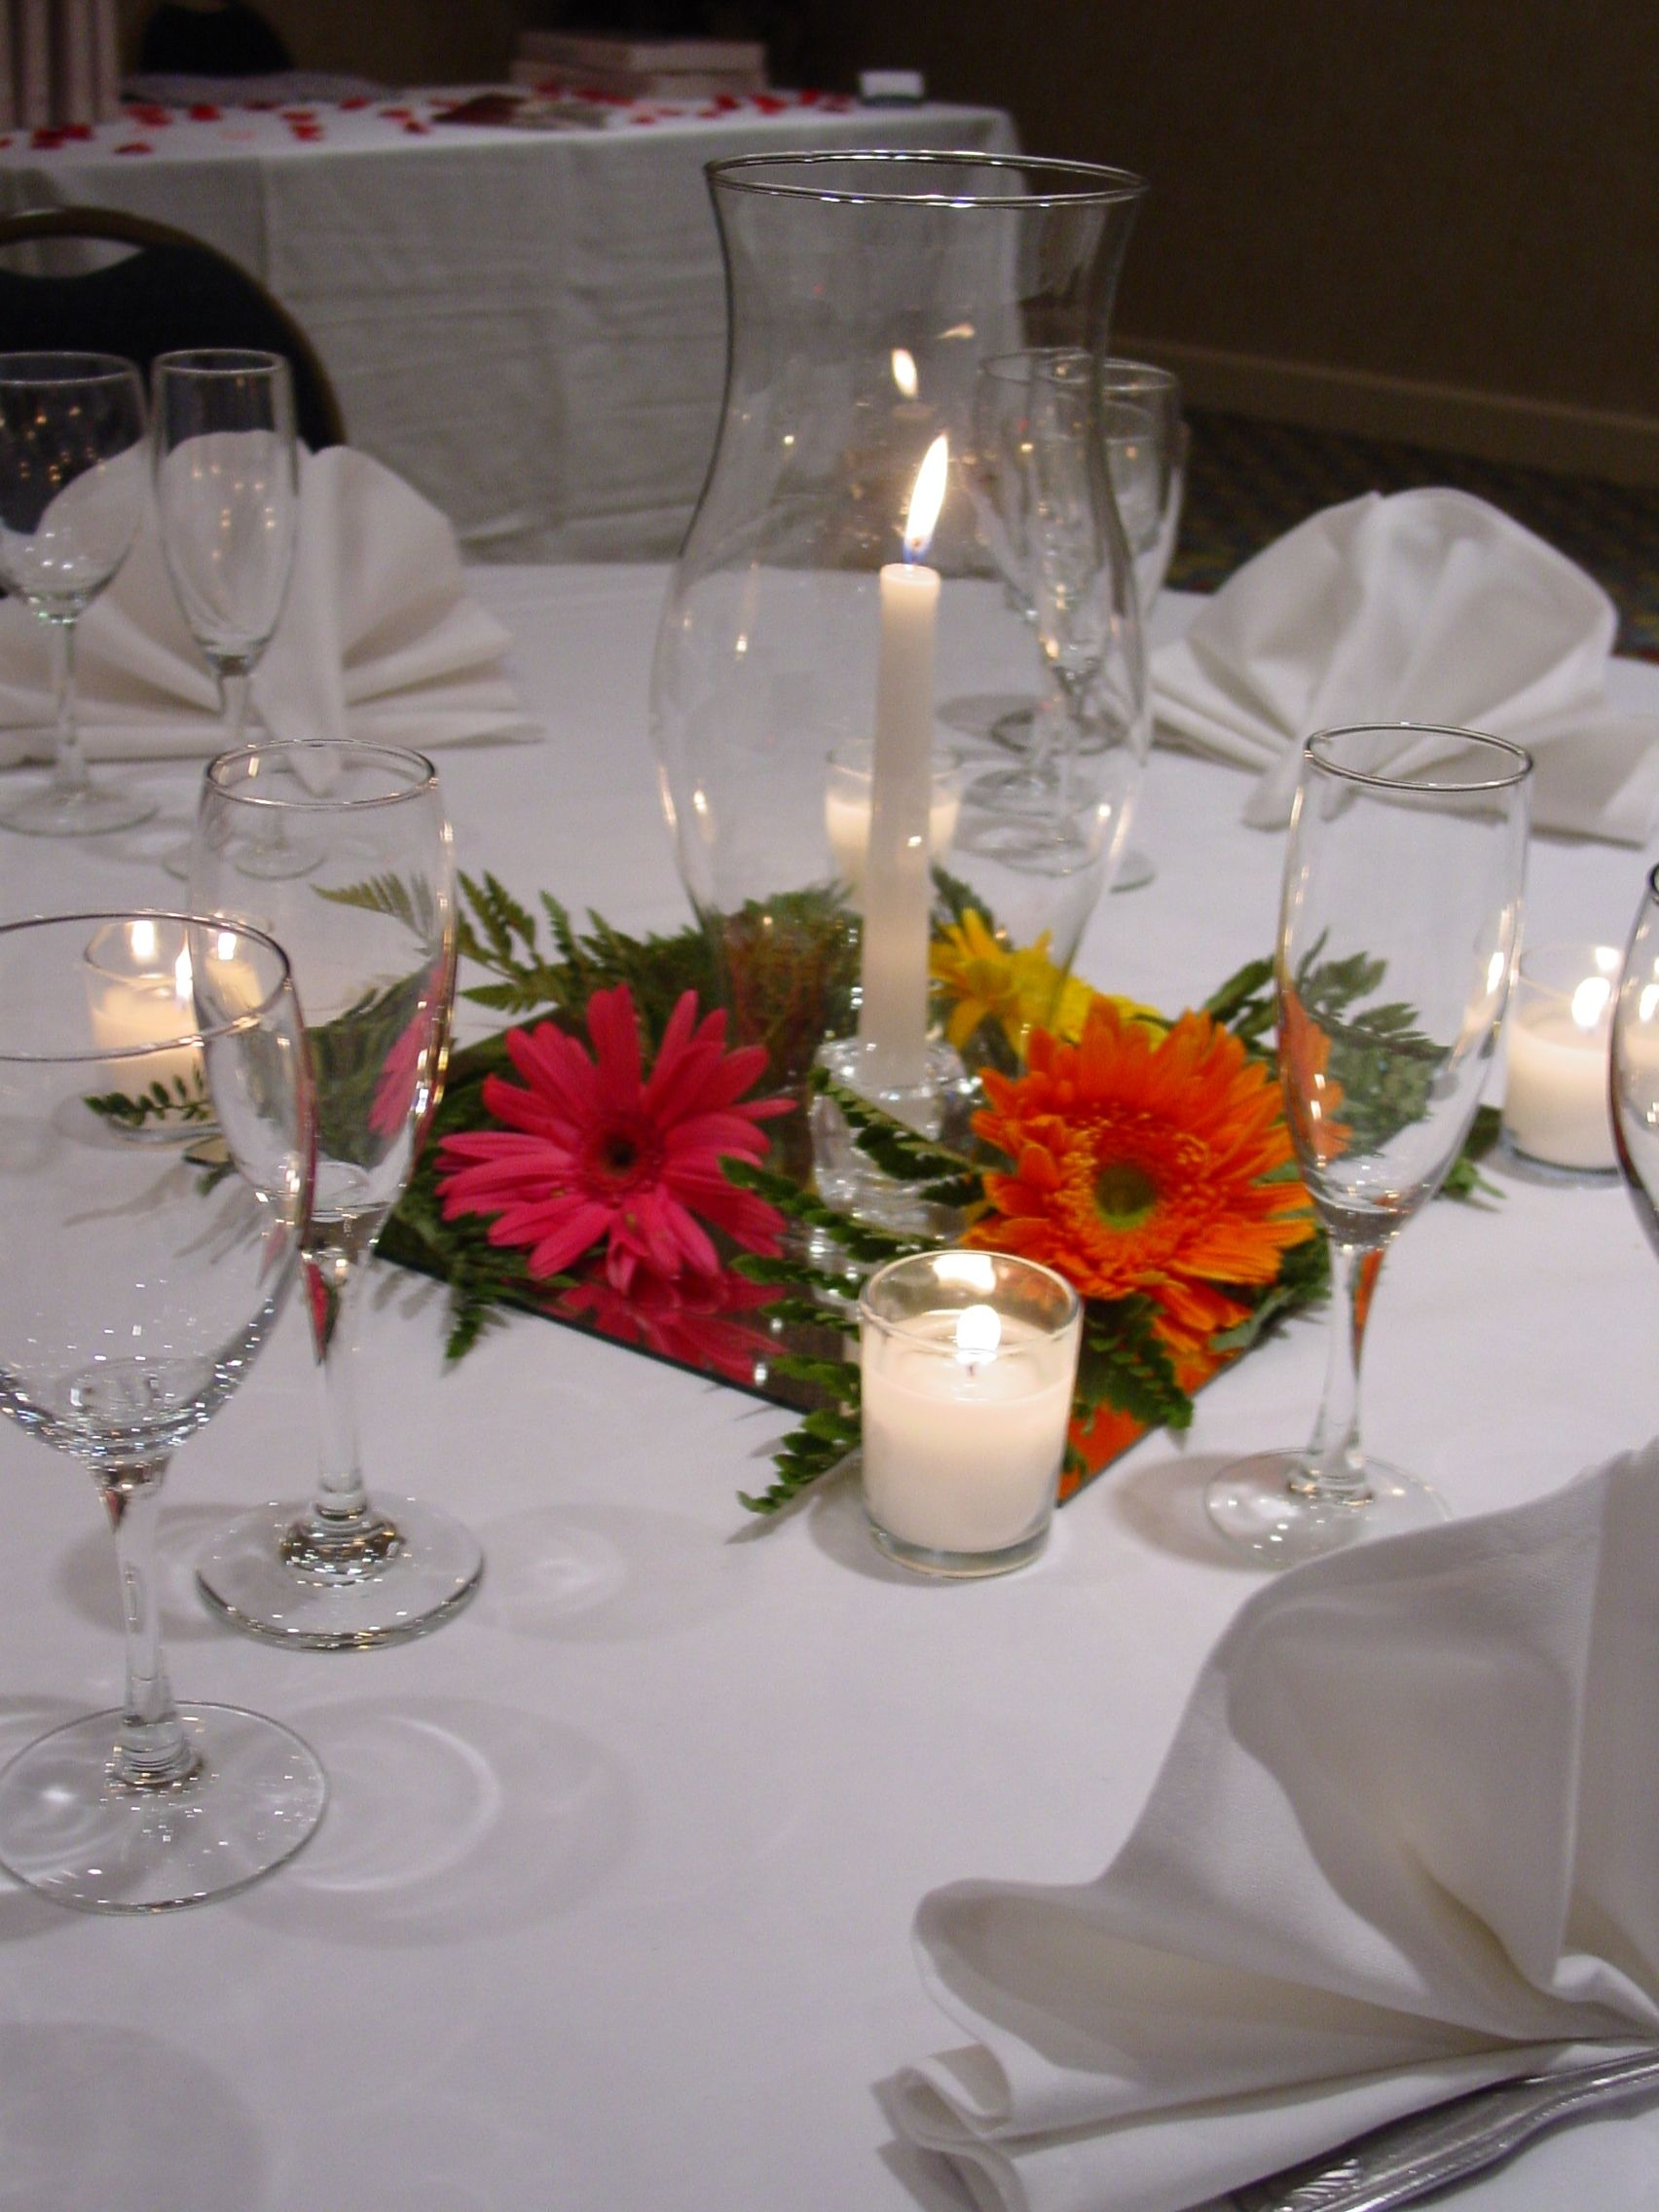 pinterest wedding table decorations candles%0A Charlotte Plaza Uptown Hotel  Hurricane Lamp Centerpiece with votive  candles